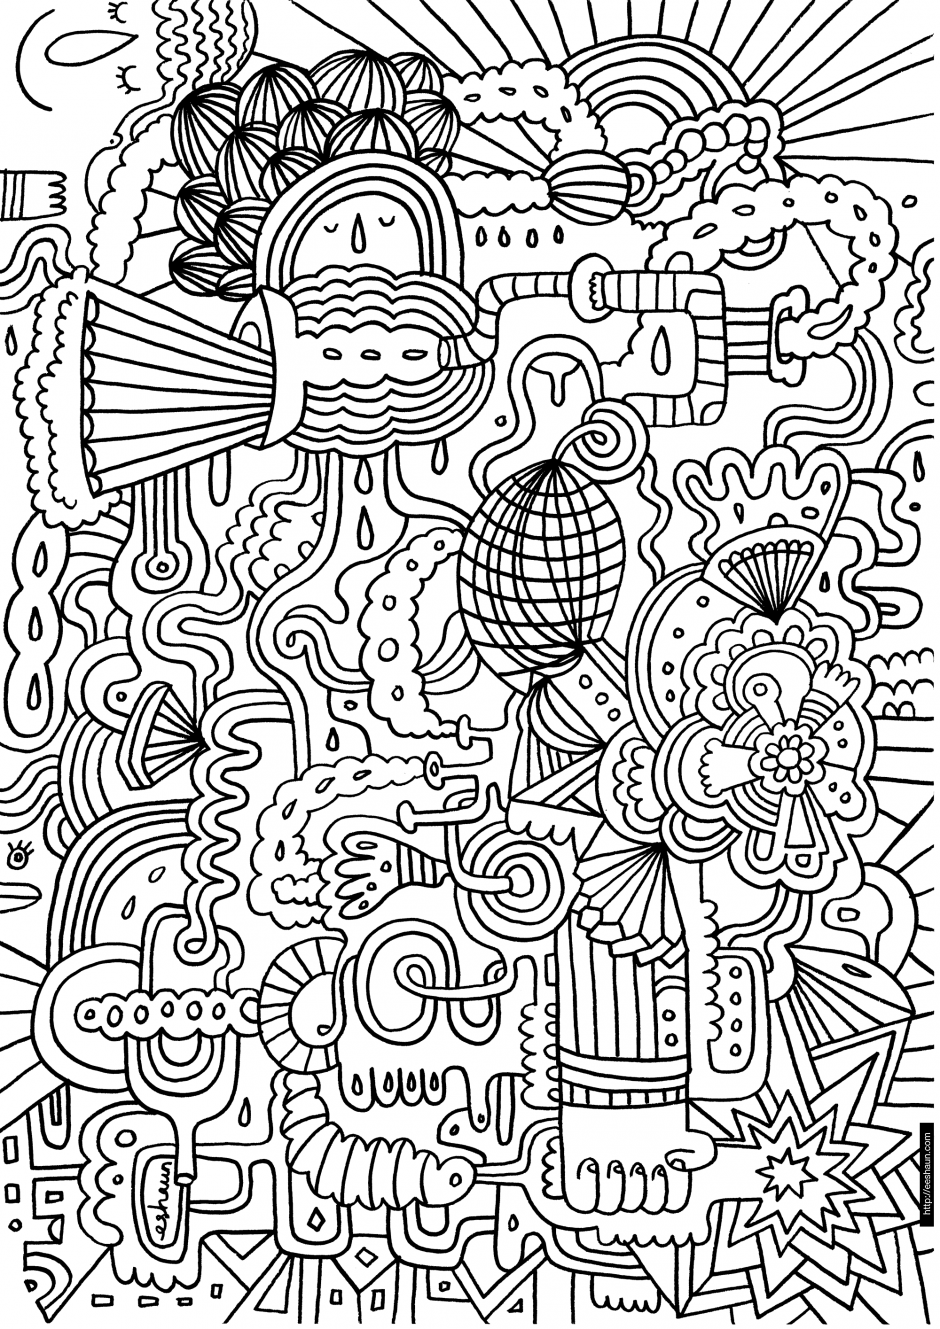 coloring pages of flowers for teenagers difficult printable coloring pages sheets for kids get the latest free coloring pages of flowers for teenagers - Teenage Coloring Pages Printable